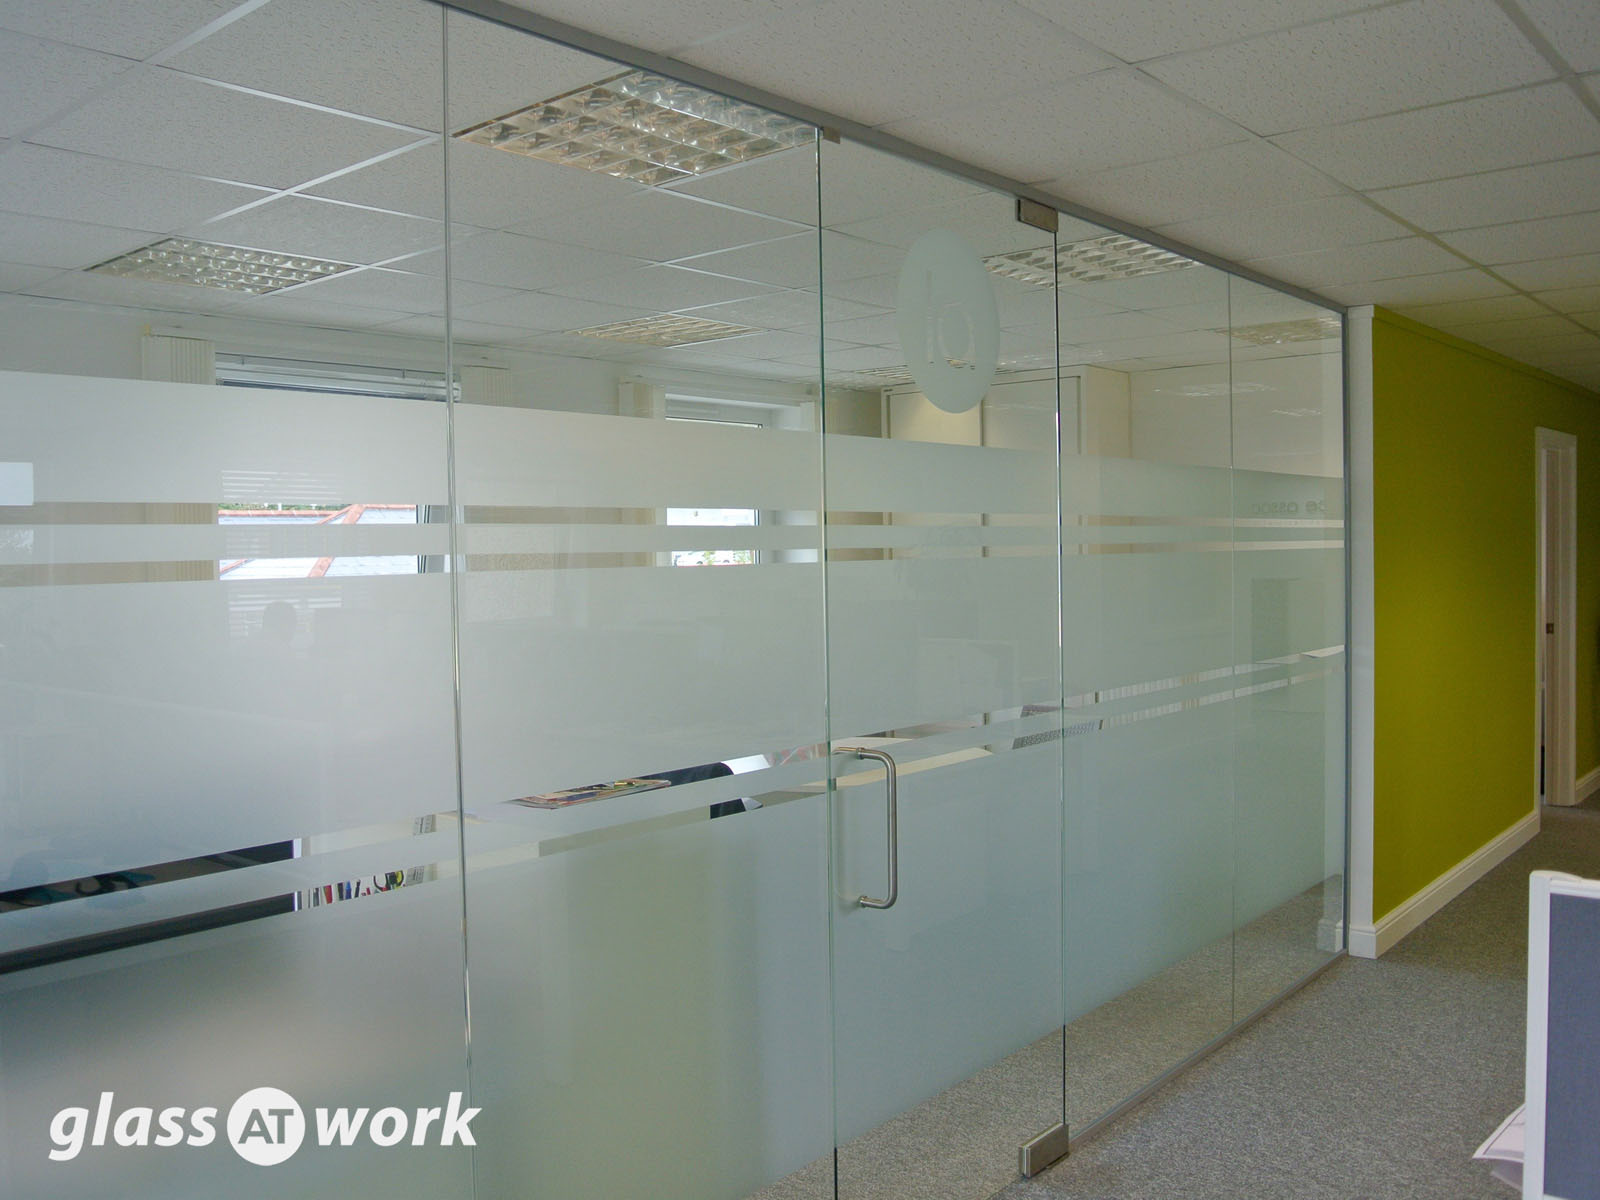 interior office partitions. Single Glazed Frameless Glass Office Partitioning Interior Partitions